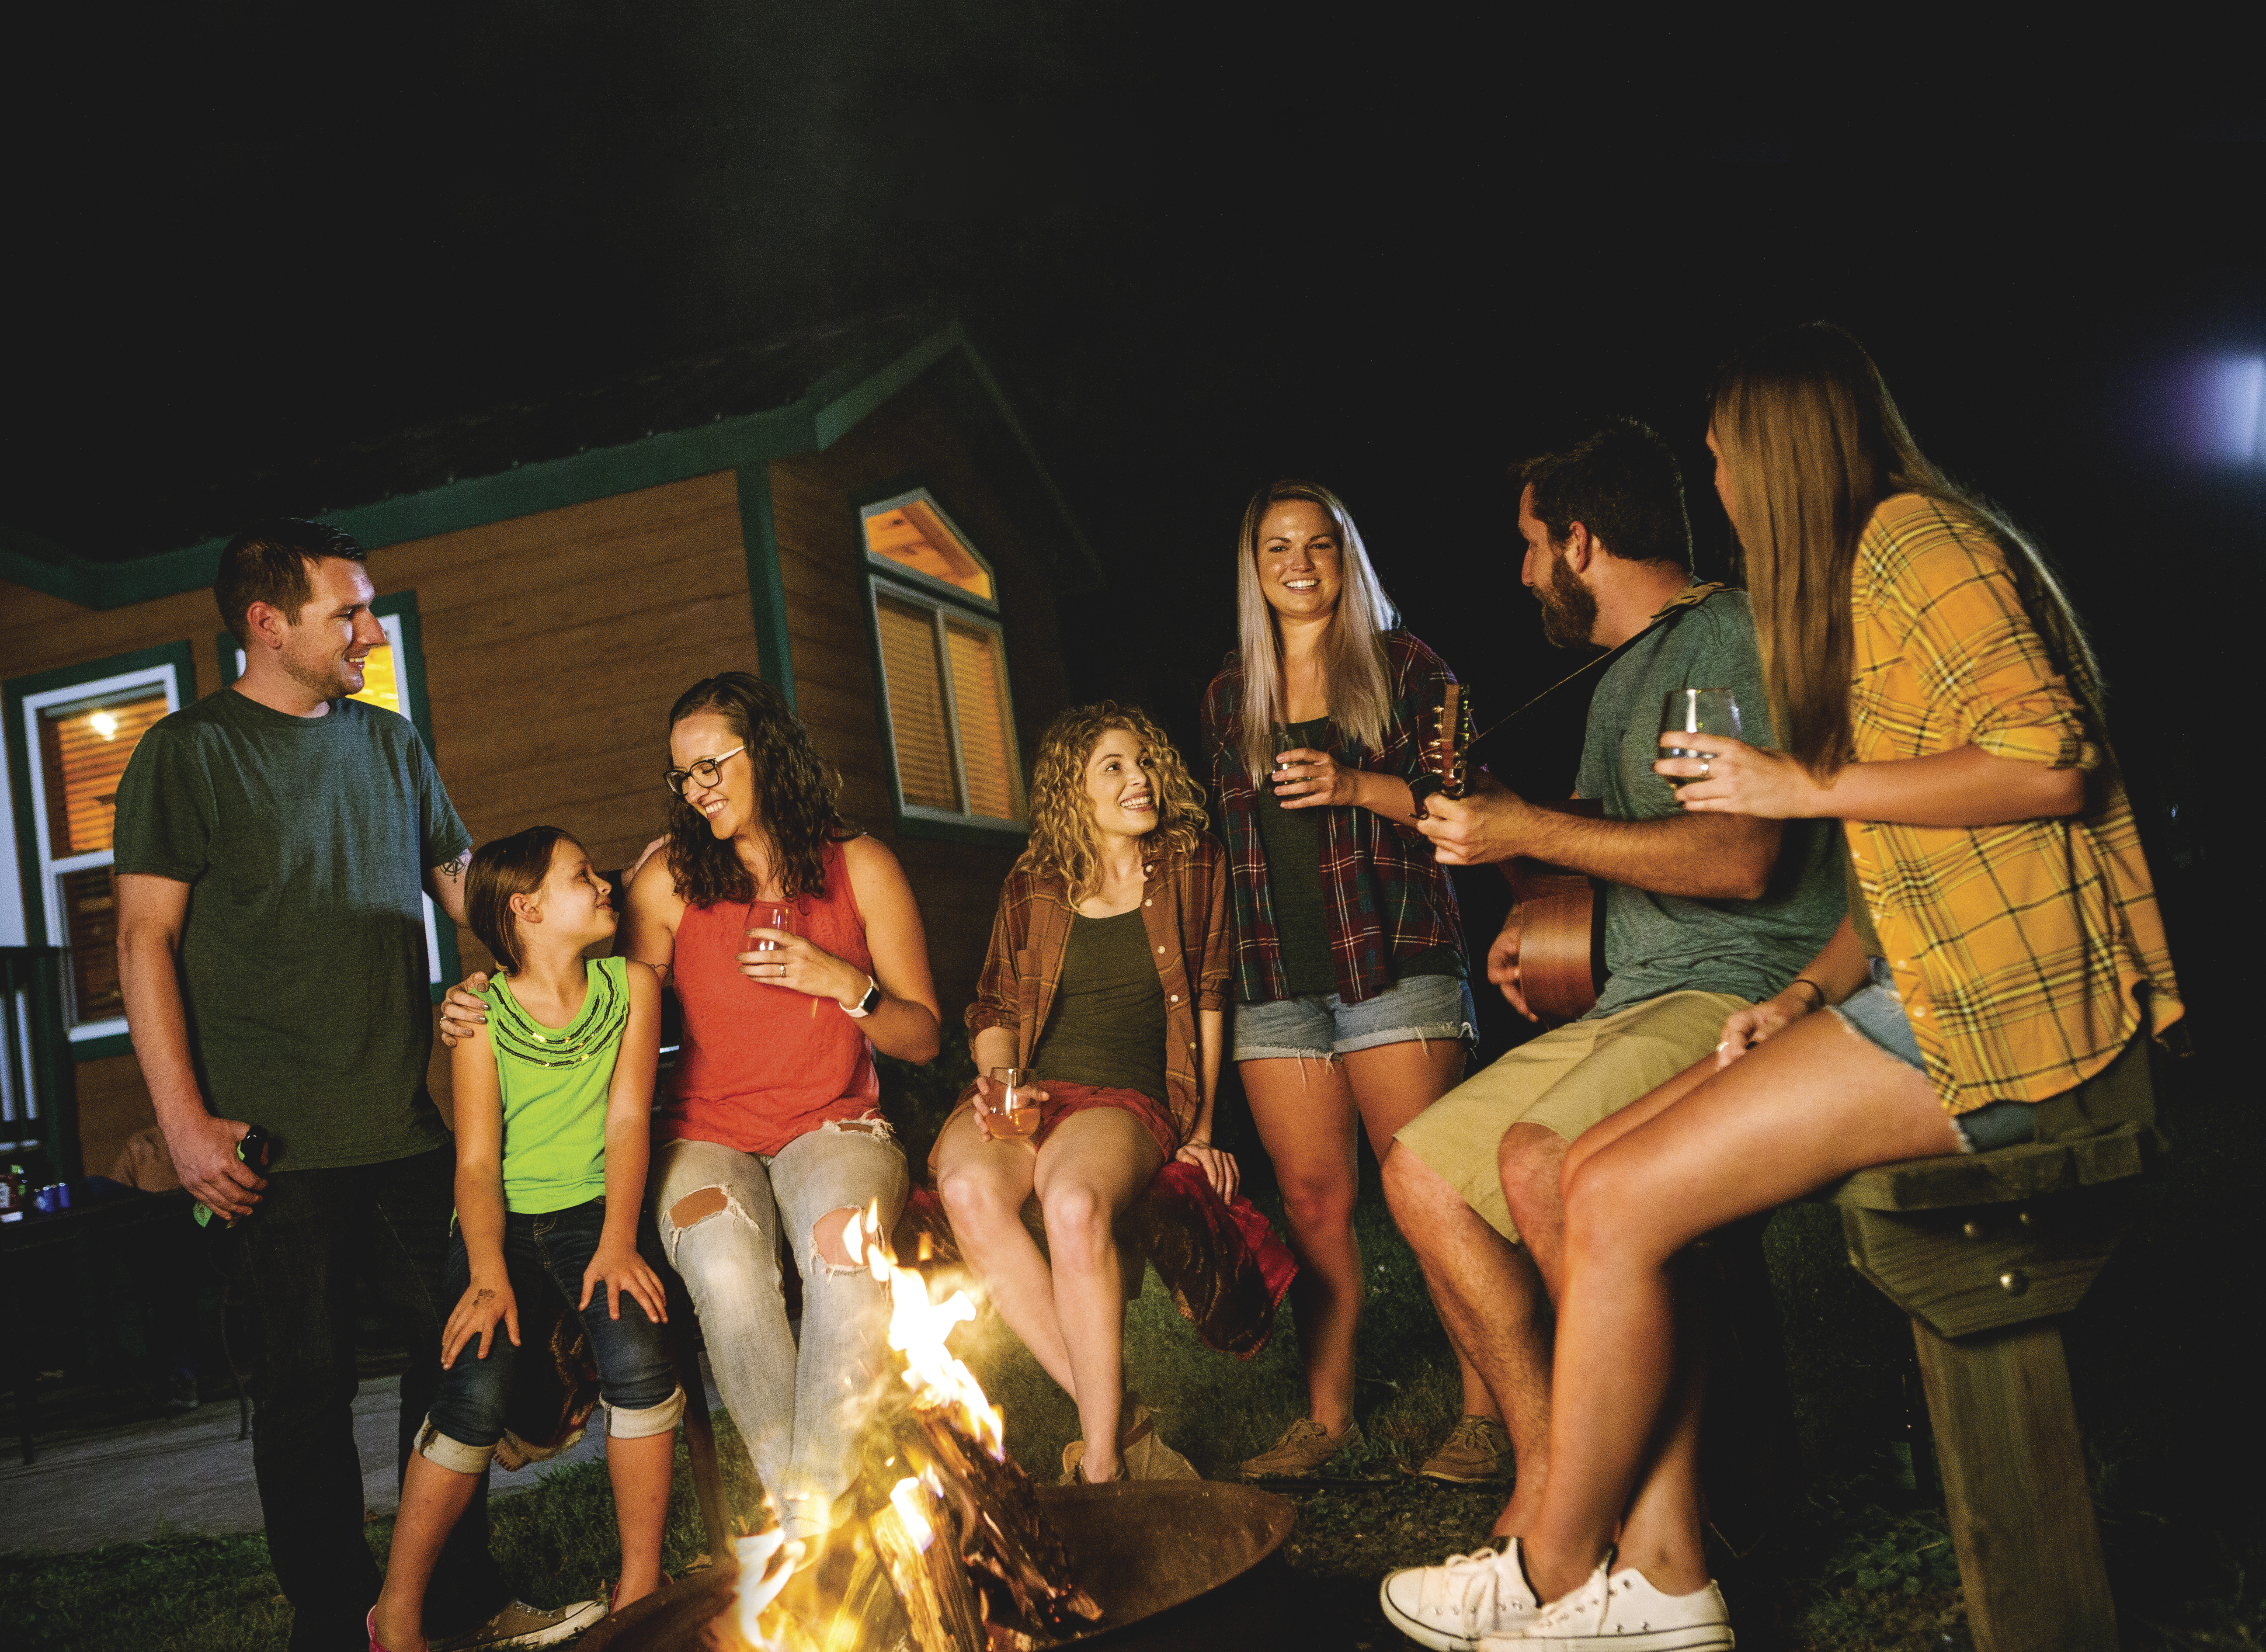 Spend time with friends and family around the campfire